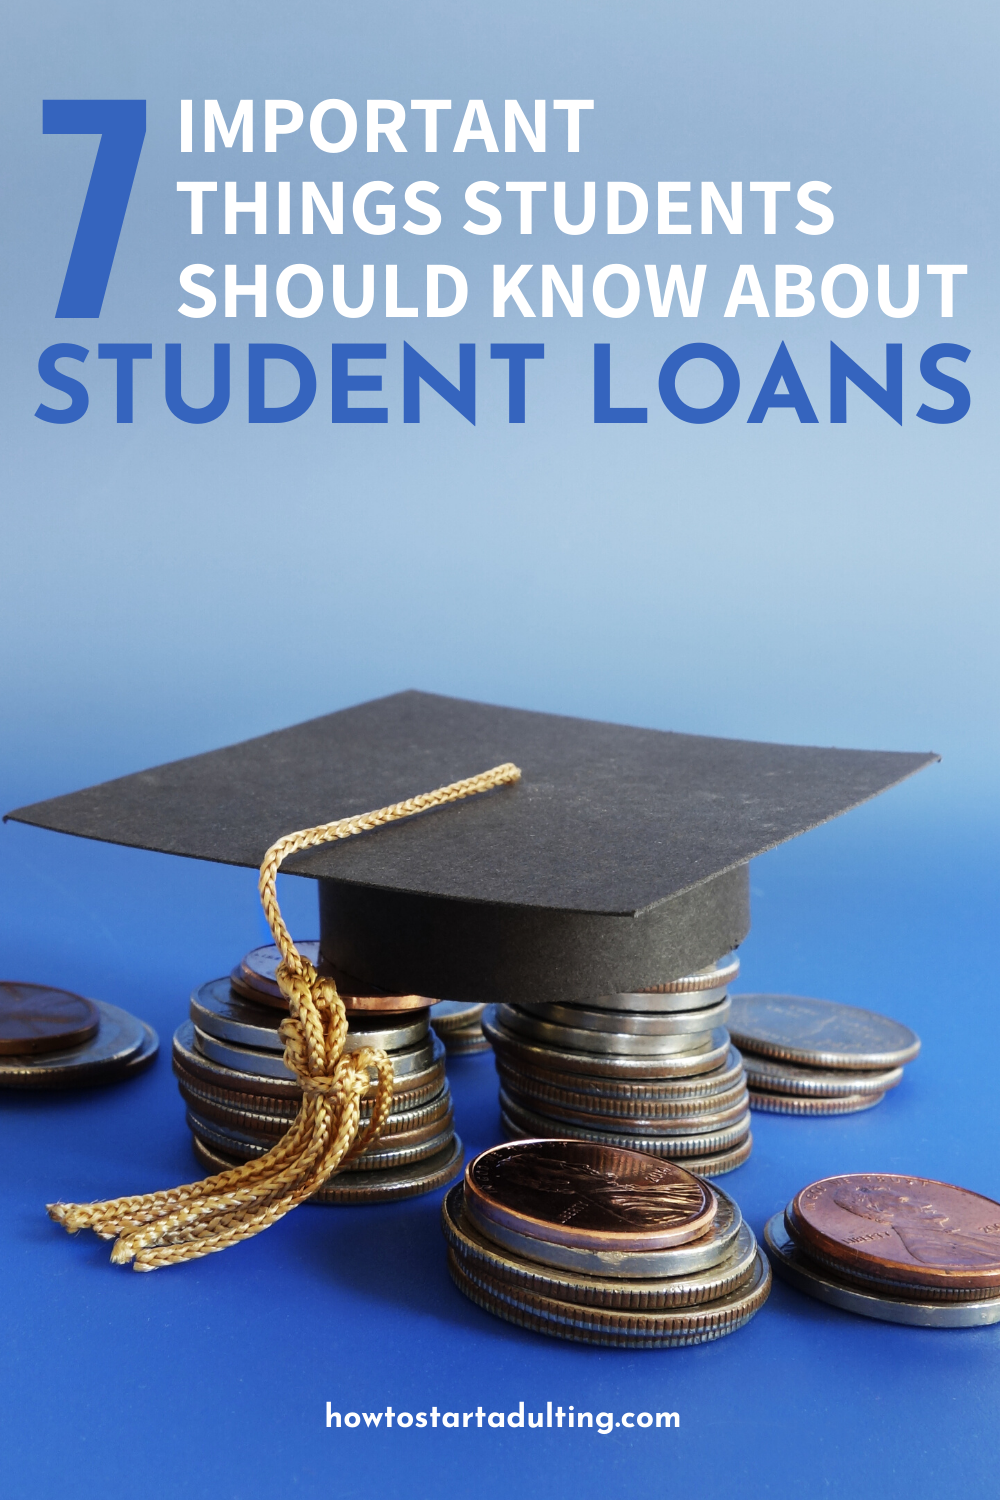 Things Students Should Know Before Taking Out Student Loans #college #collegelife #studentloans #adulting #college #collegeprep #collegestudent #highschoollife #highschoolsenior